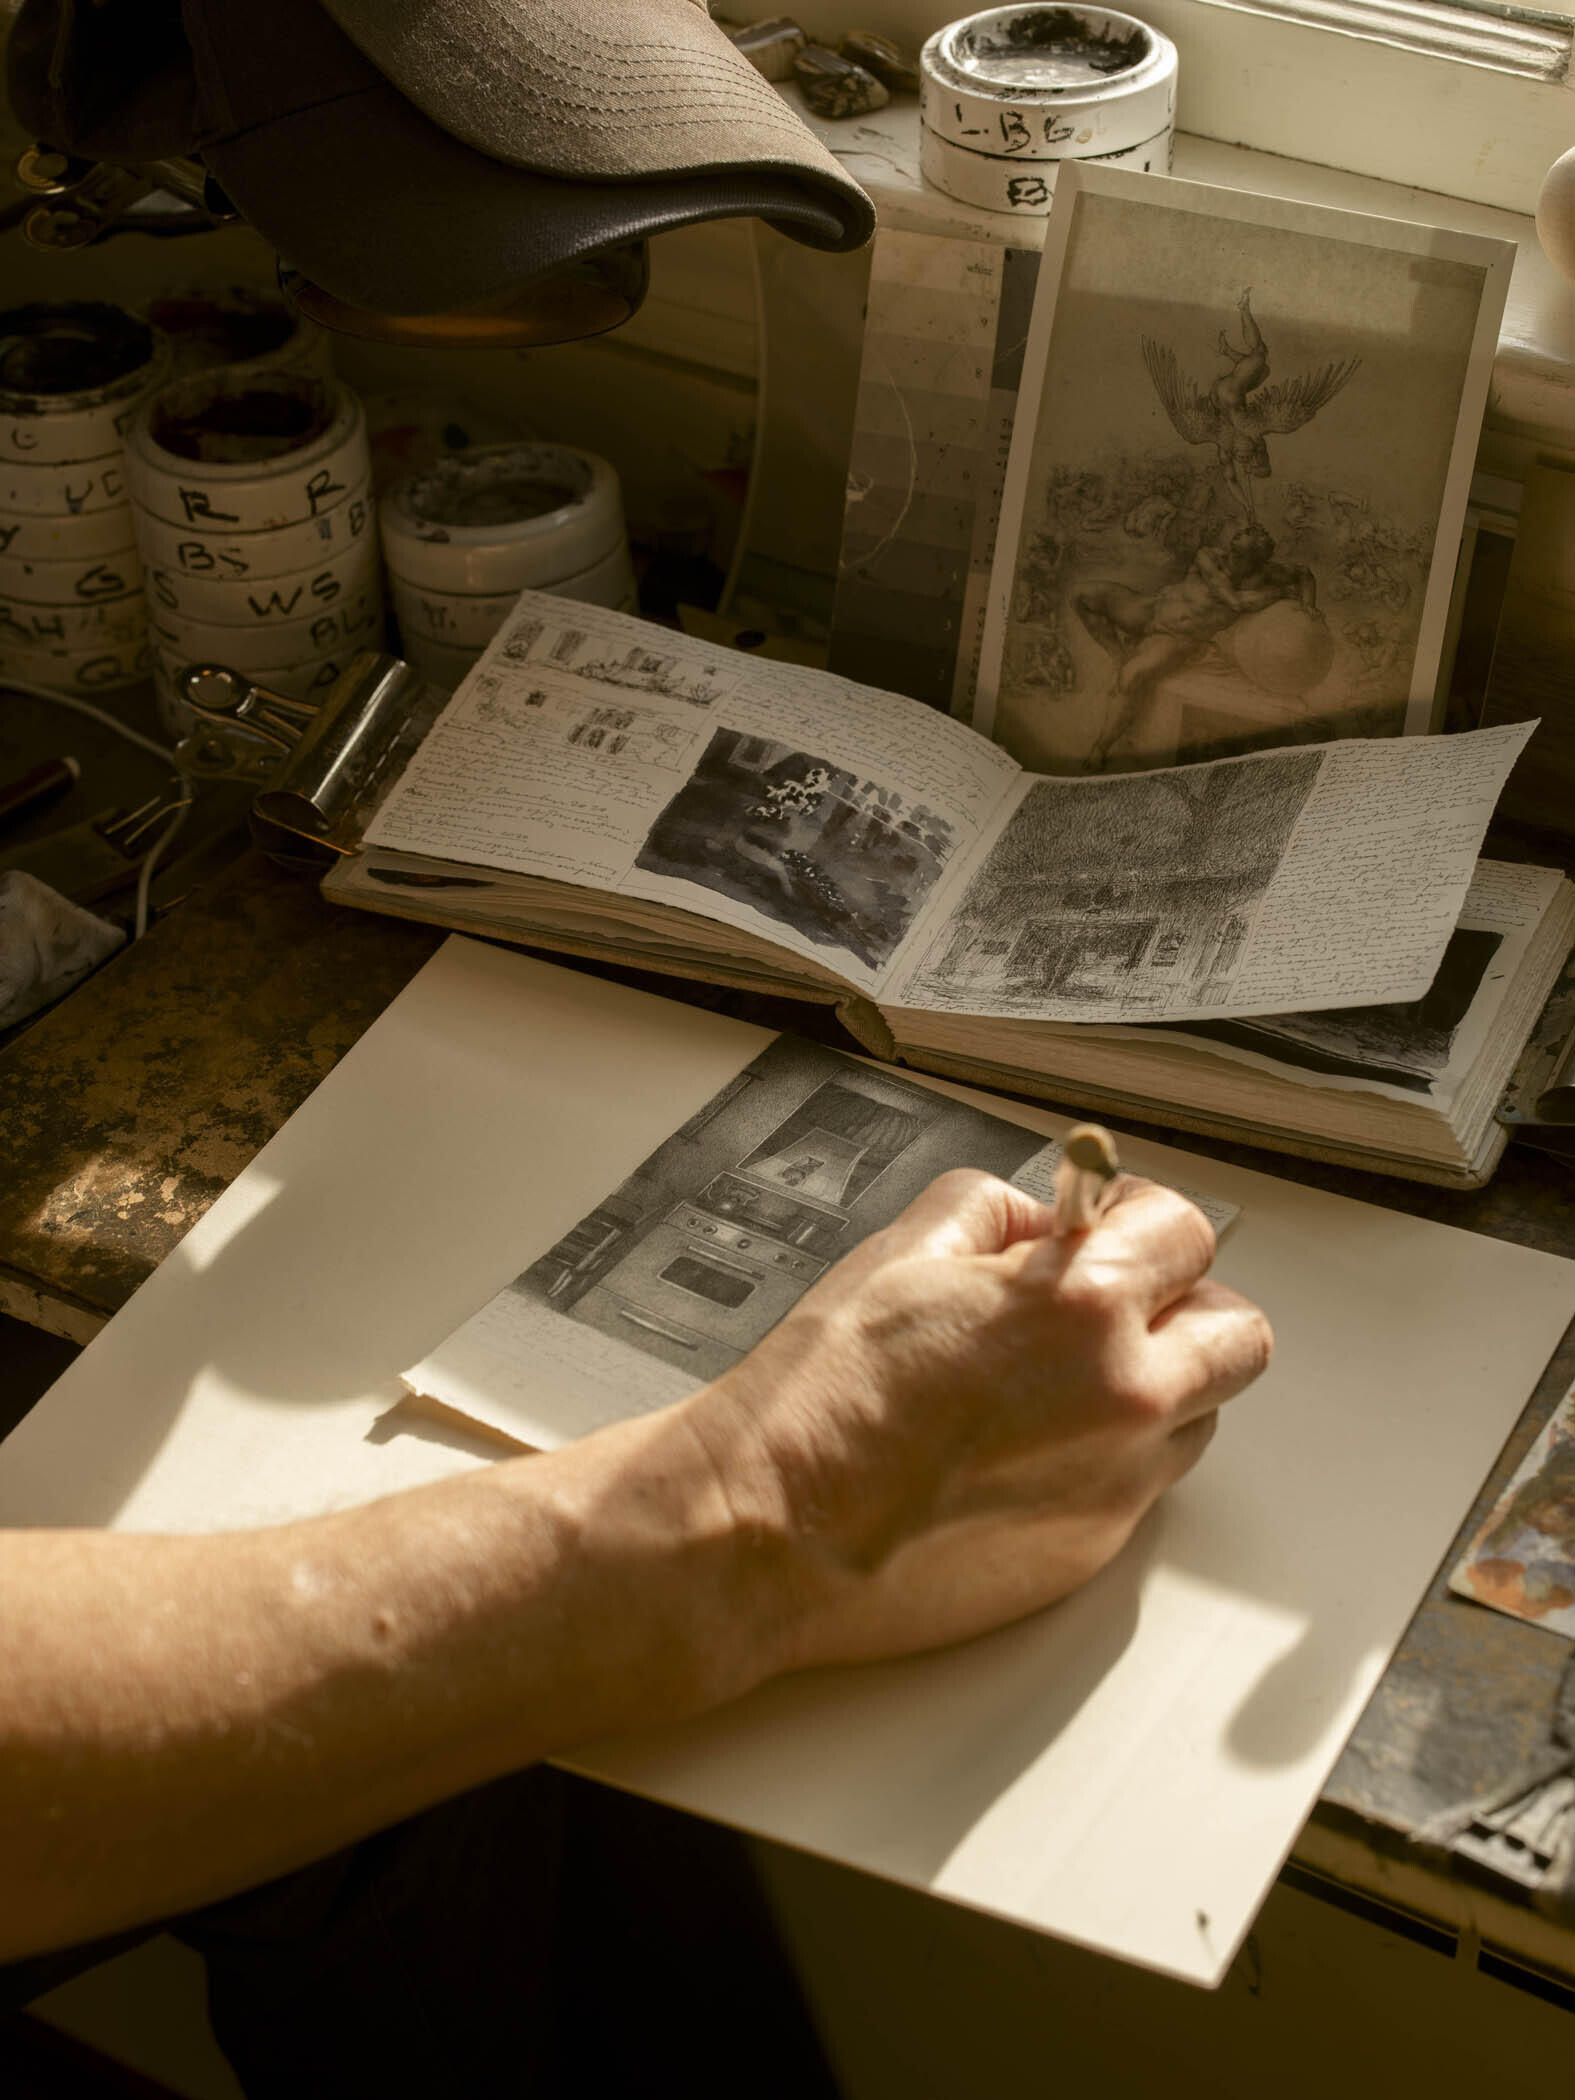 Photograph of the Artist Working on a Drawing, 2020 image